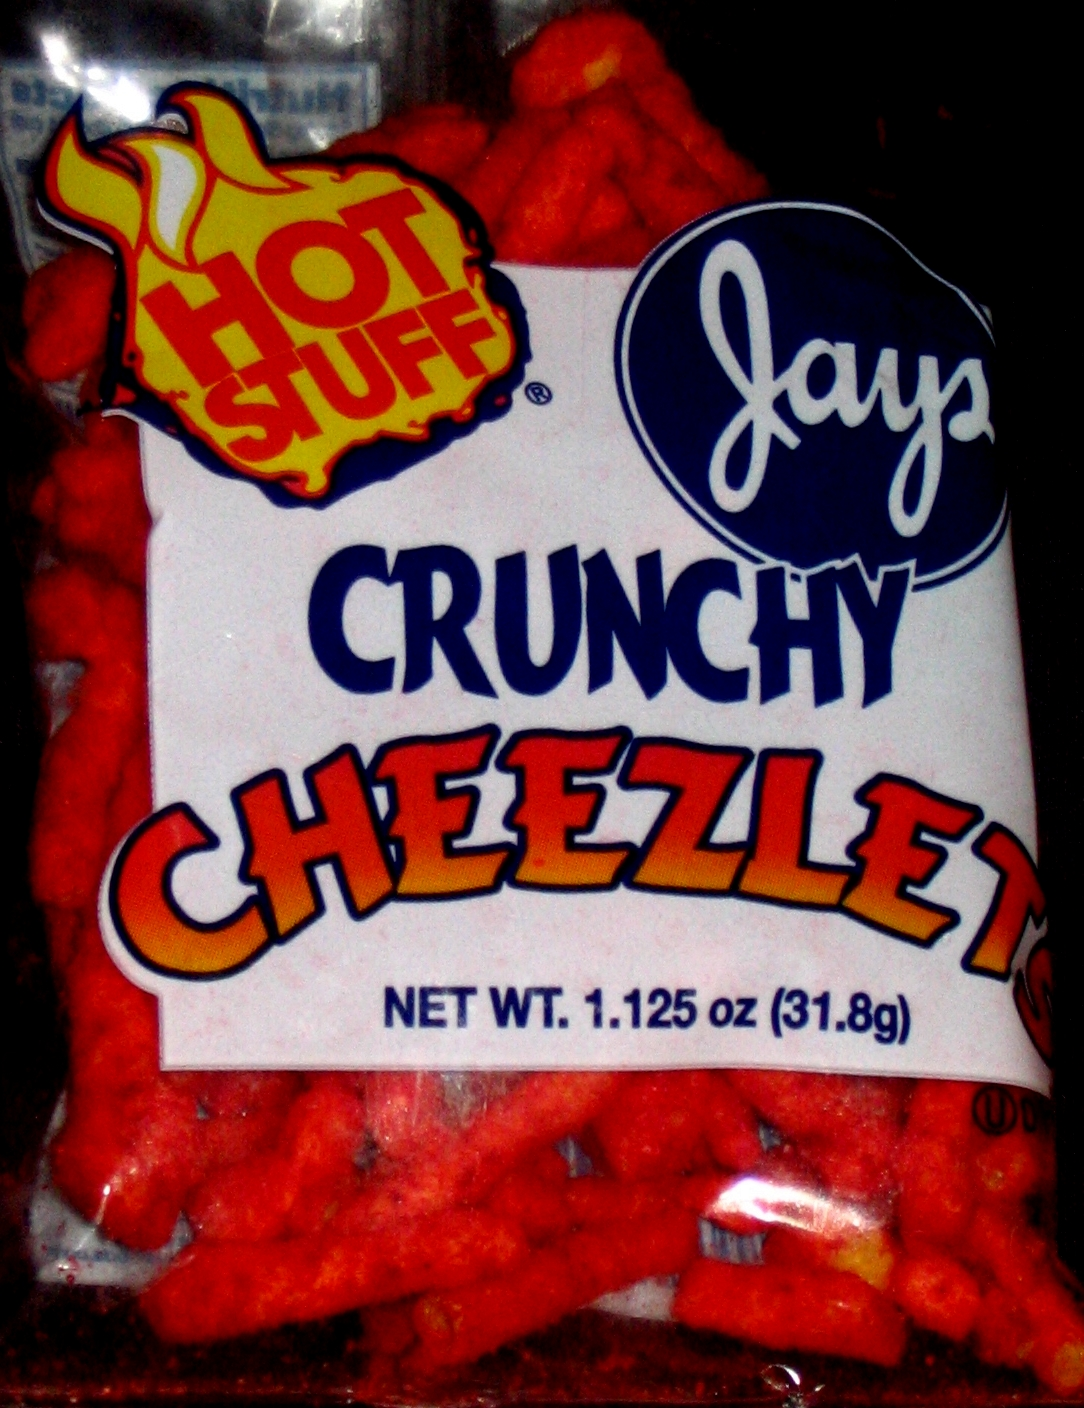 jays-hot-crunch-cheezelets.jpeg